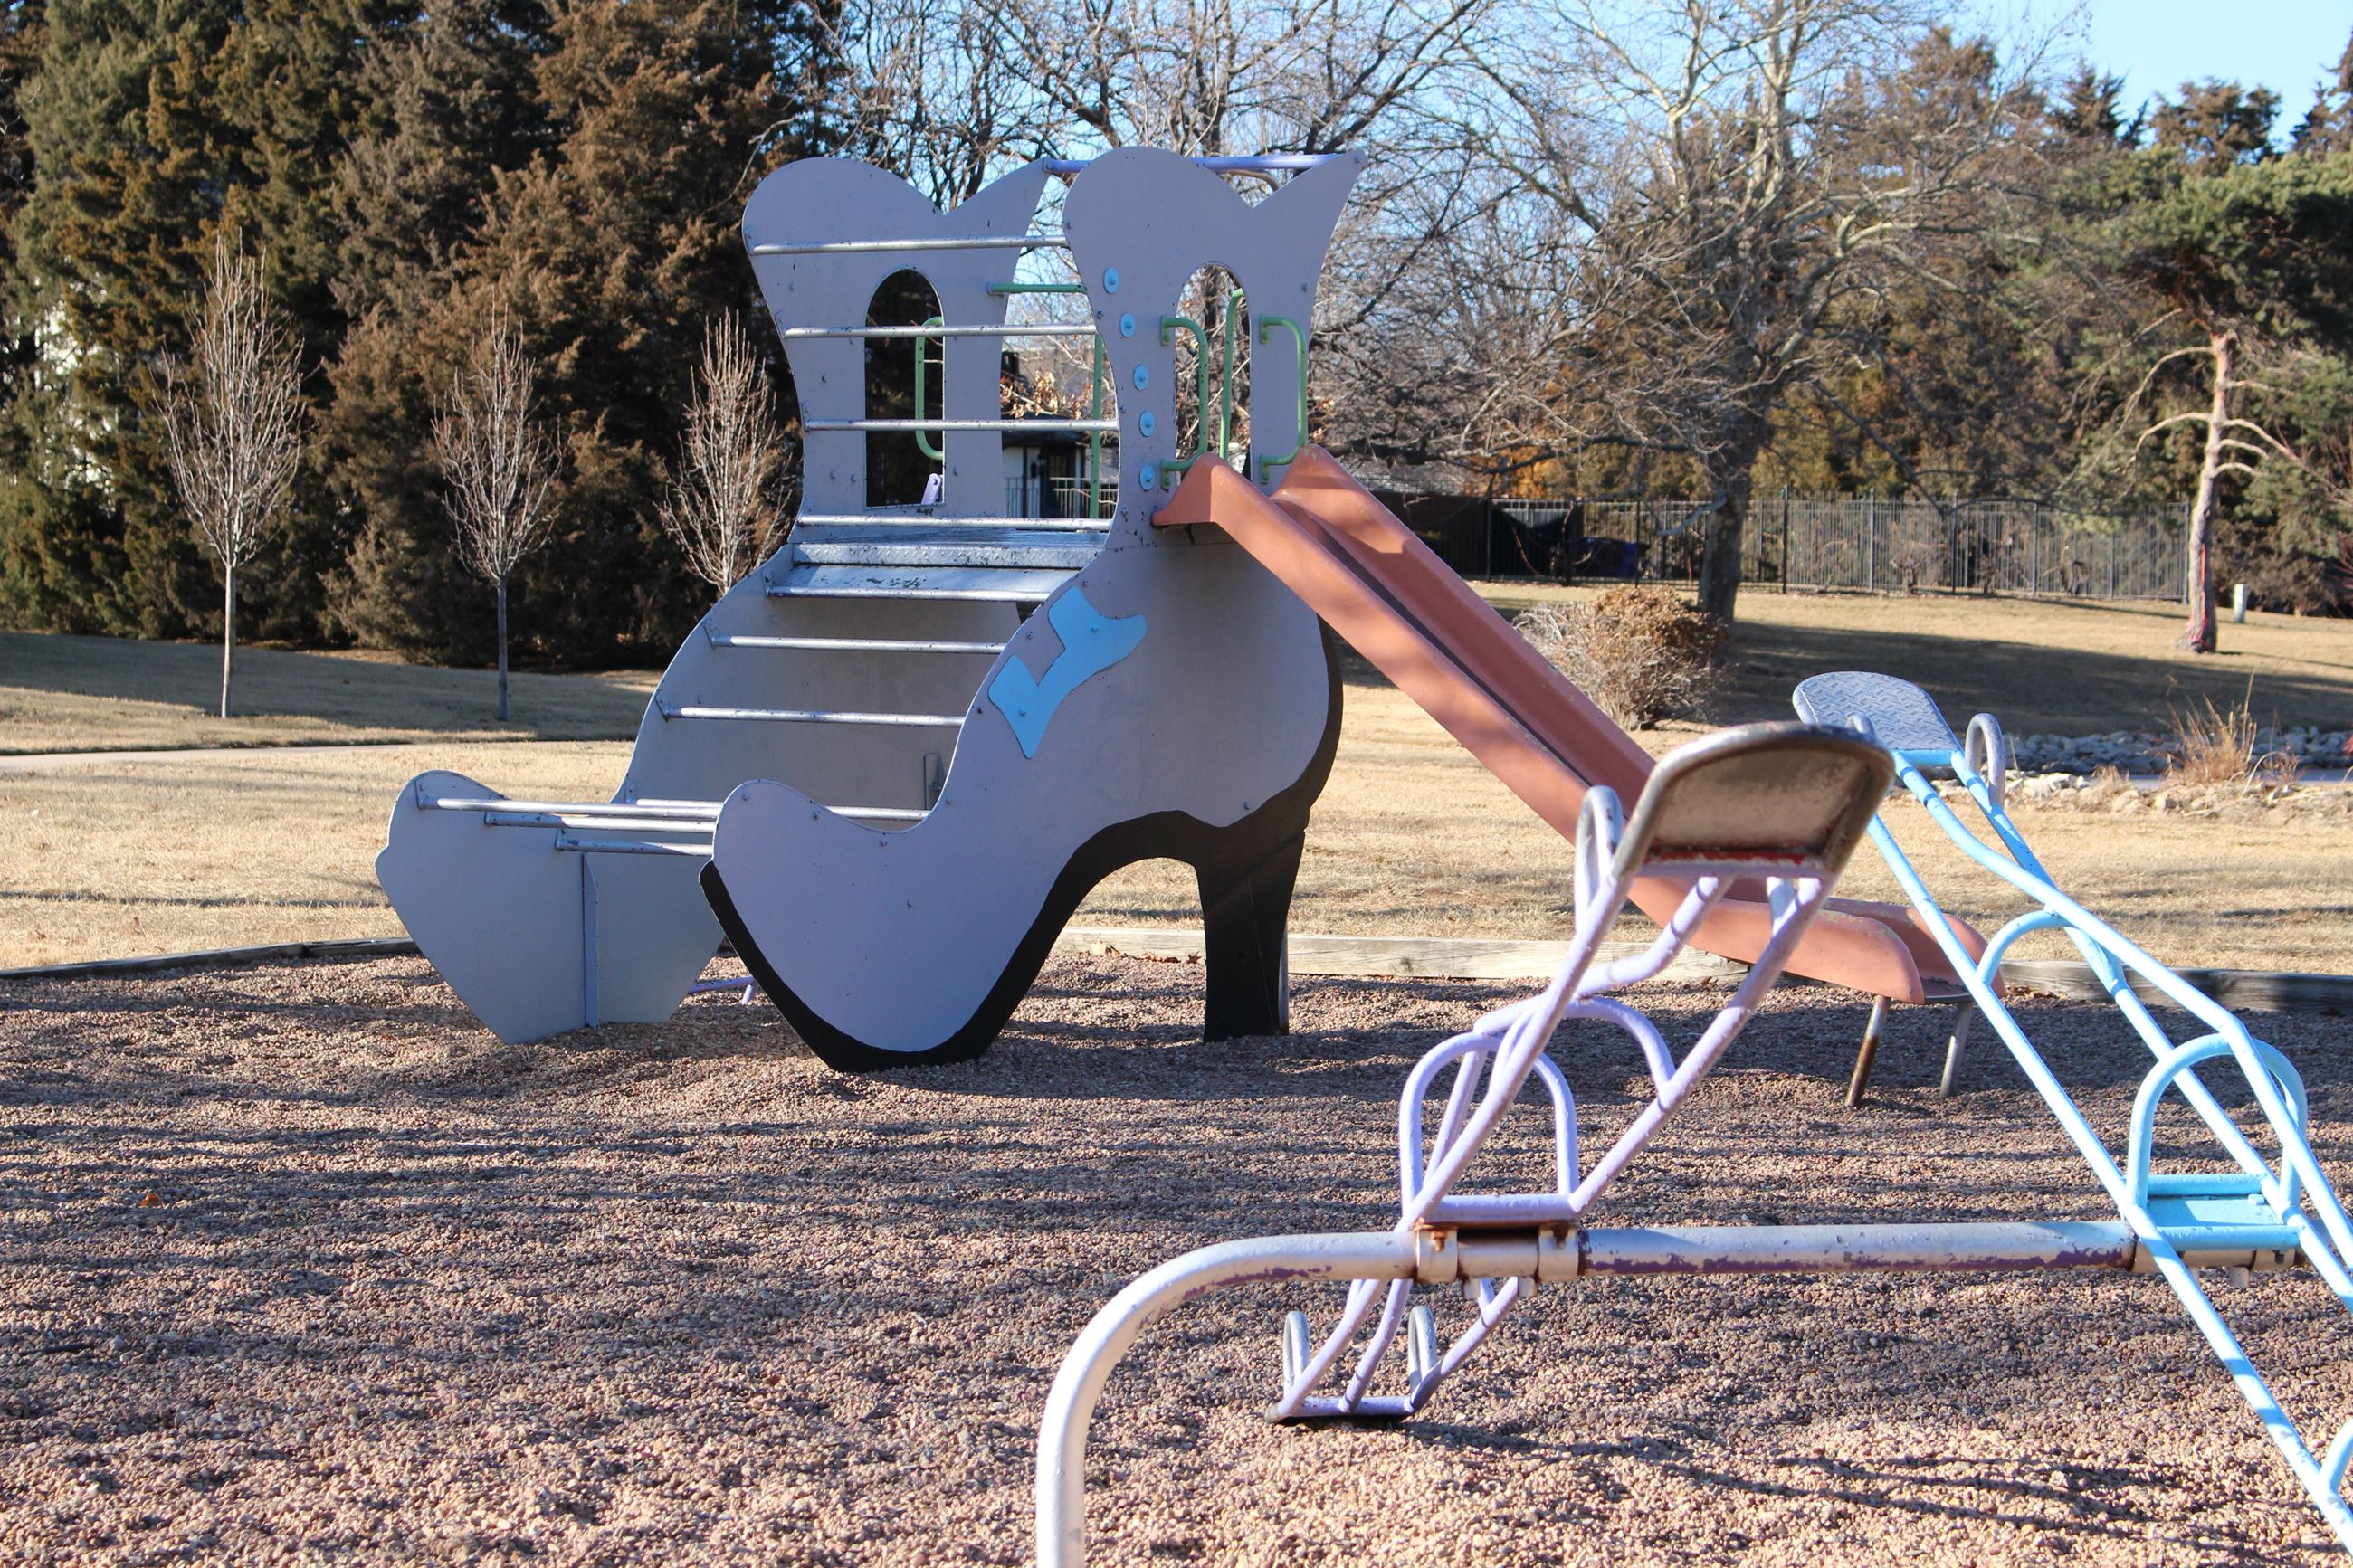 Countryside Park features a slide that looks like a shoe, which sits next to a merry-go-round